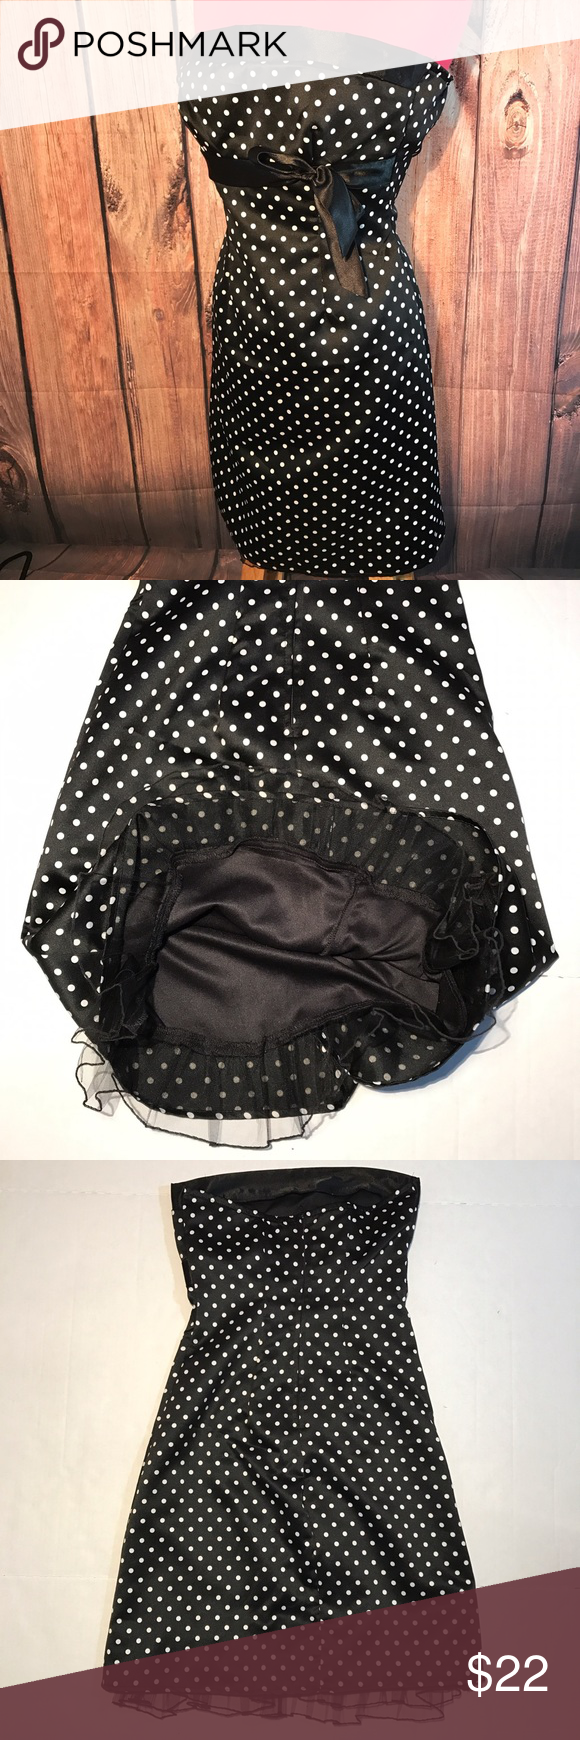 Trixxi polka dot lined fancy party prom dress as 3 Super cute polka dot black lined dress. Back zip. In great condition. Party or prom fancy dress. Trixxi Dresses Midi